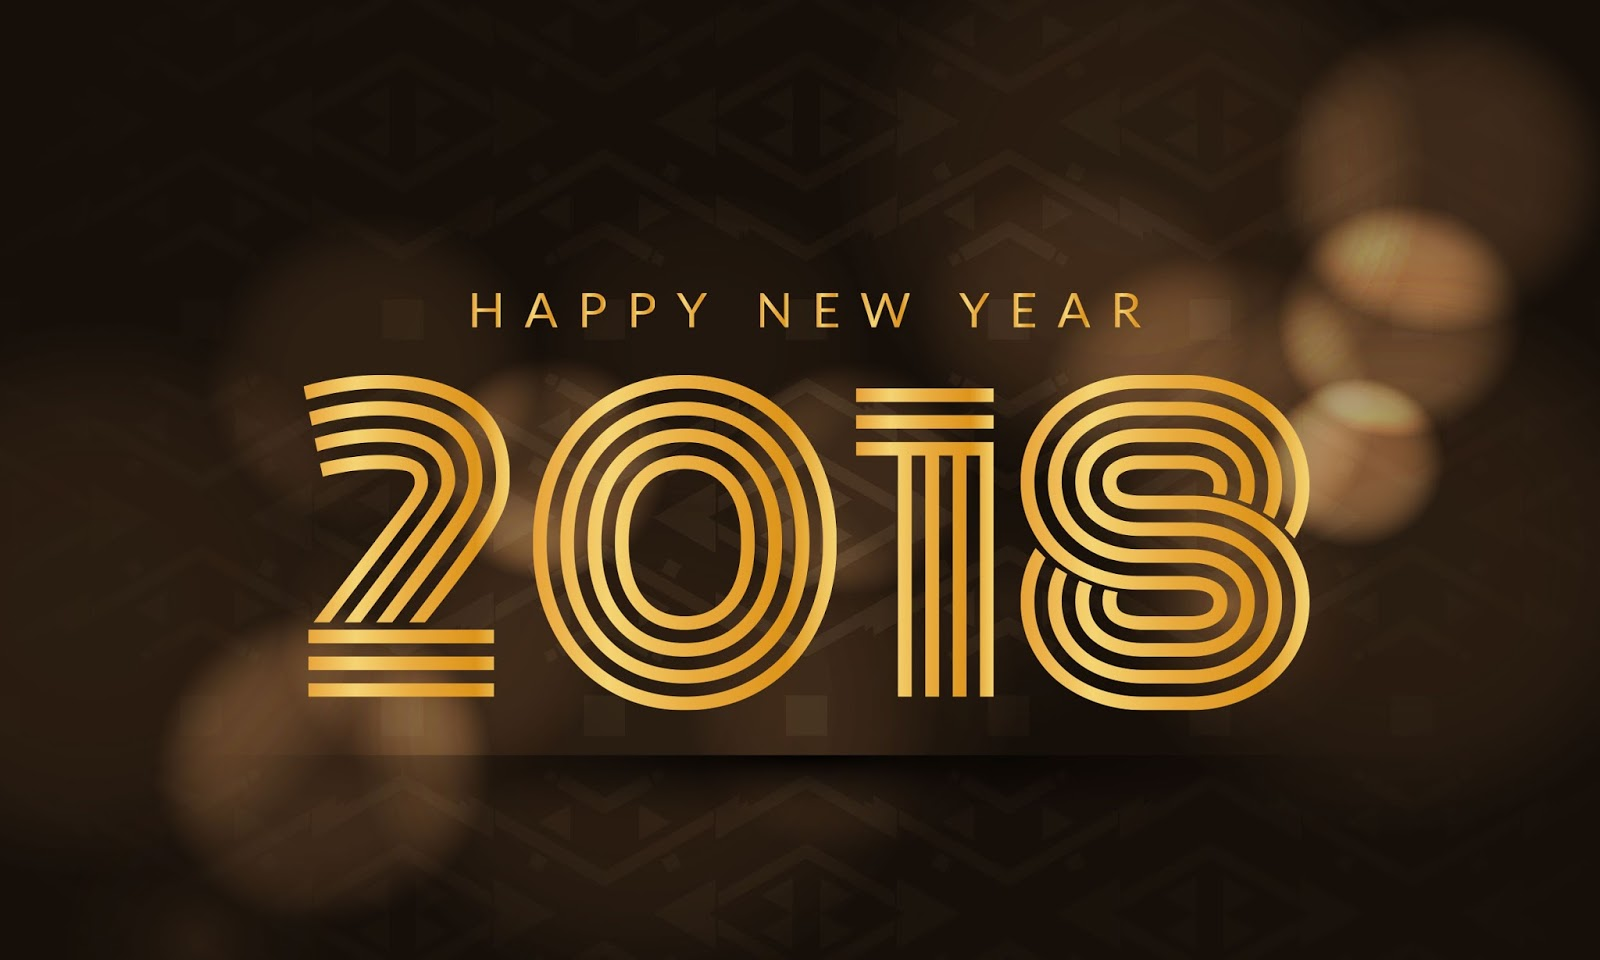 happy new year hd wallpapers 2018 | hd wallpapers (high definition